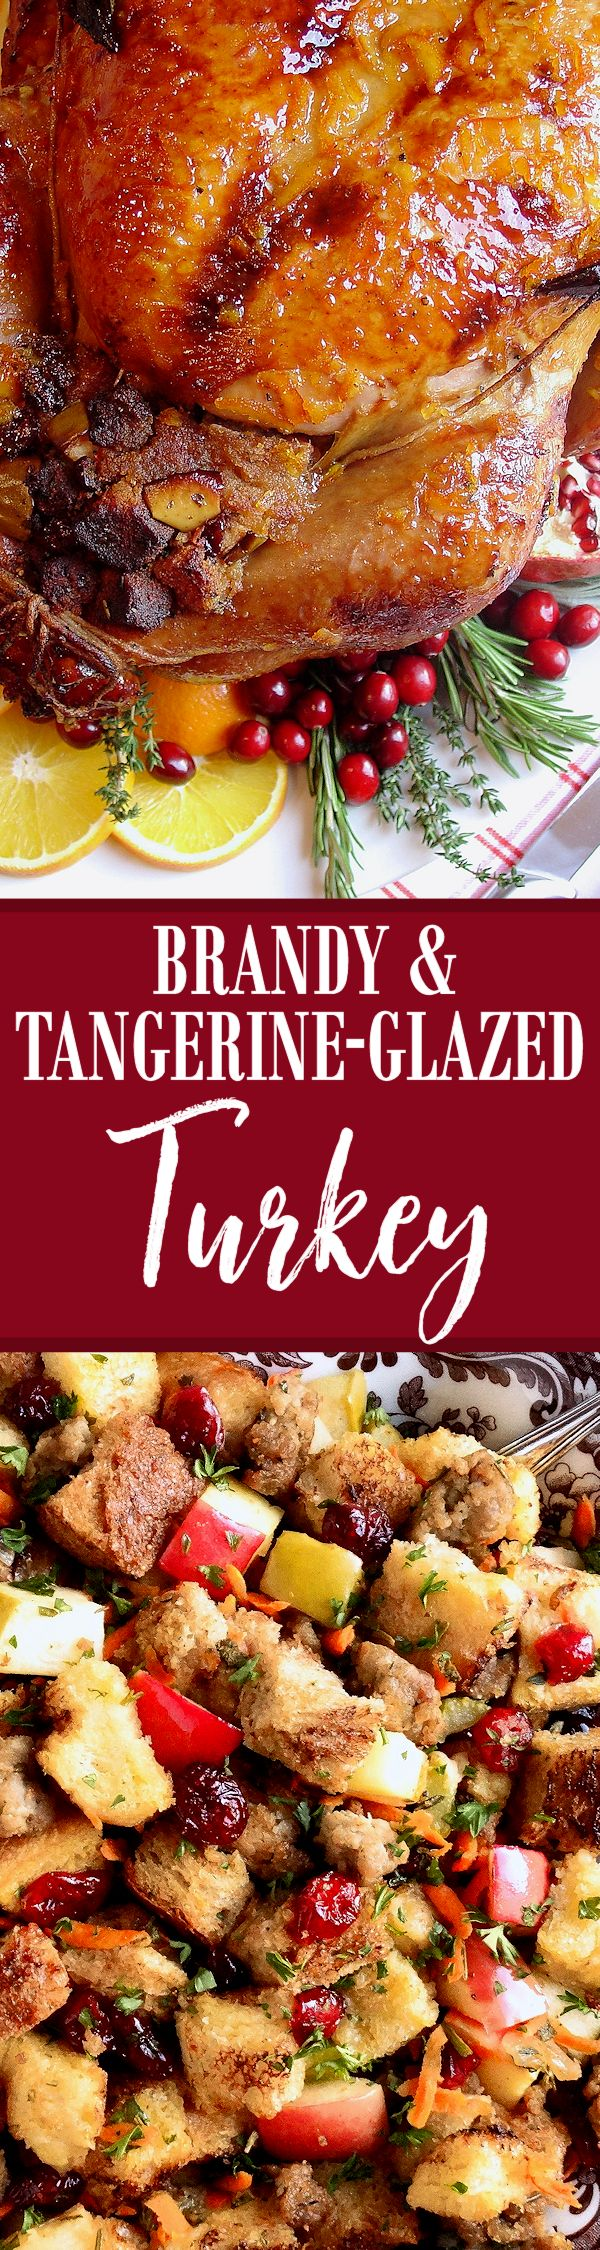 Christmas Brandy & Tangerine-Glazed Turkey ~ Perfect citrus-glazed roasted holiday turkey for Christmas! Starting with our popular Apple Cider & Citrus Turkey Brine with Herbs and Spices, a flavorful, tender and juicy turkey is ensured. Everyone who has tried this recipe, with the phenomenal flavor profile due to the unique brandy-infused tangerine glaze, proclaims it the very best! You will receive rave reviews and it will become a new family Christmas tradition!